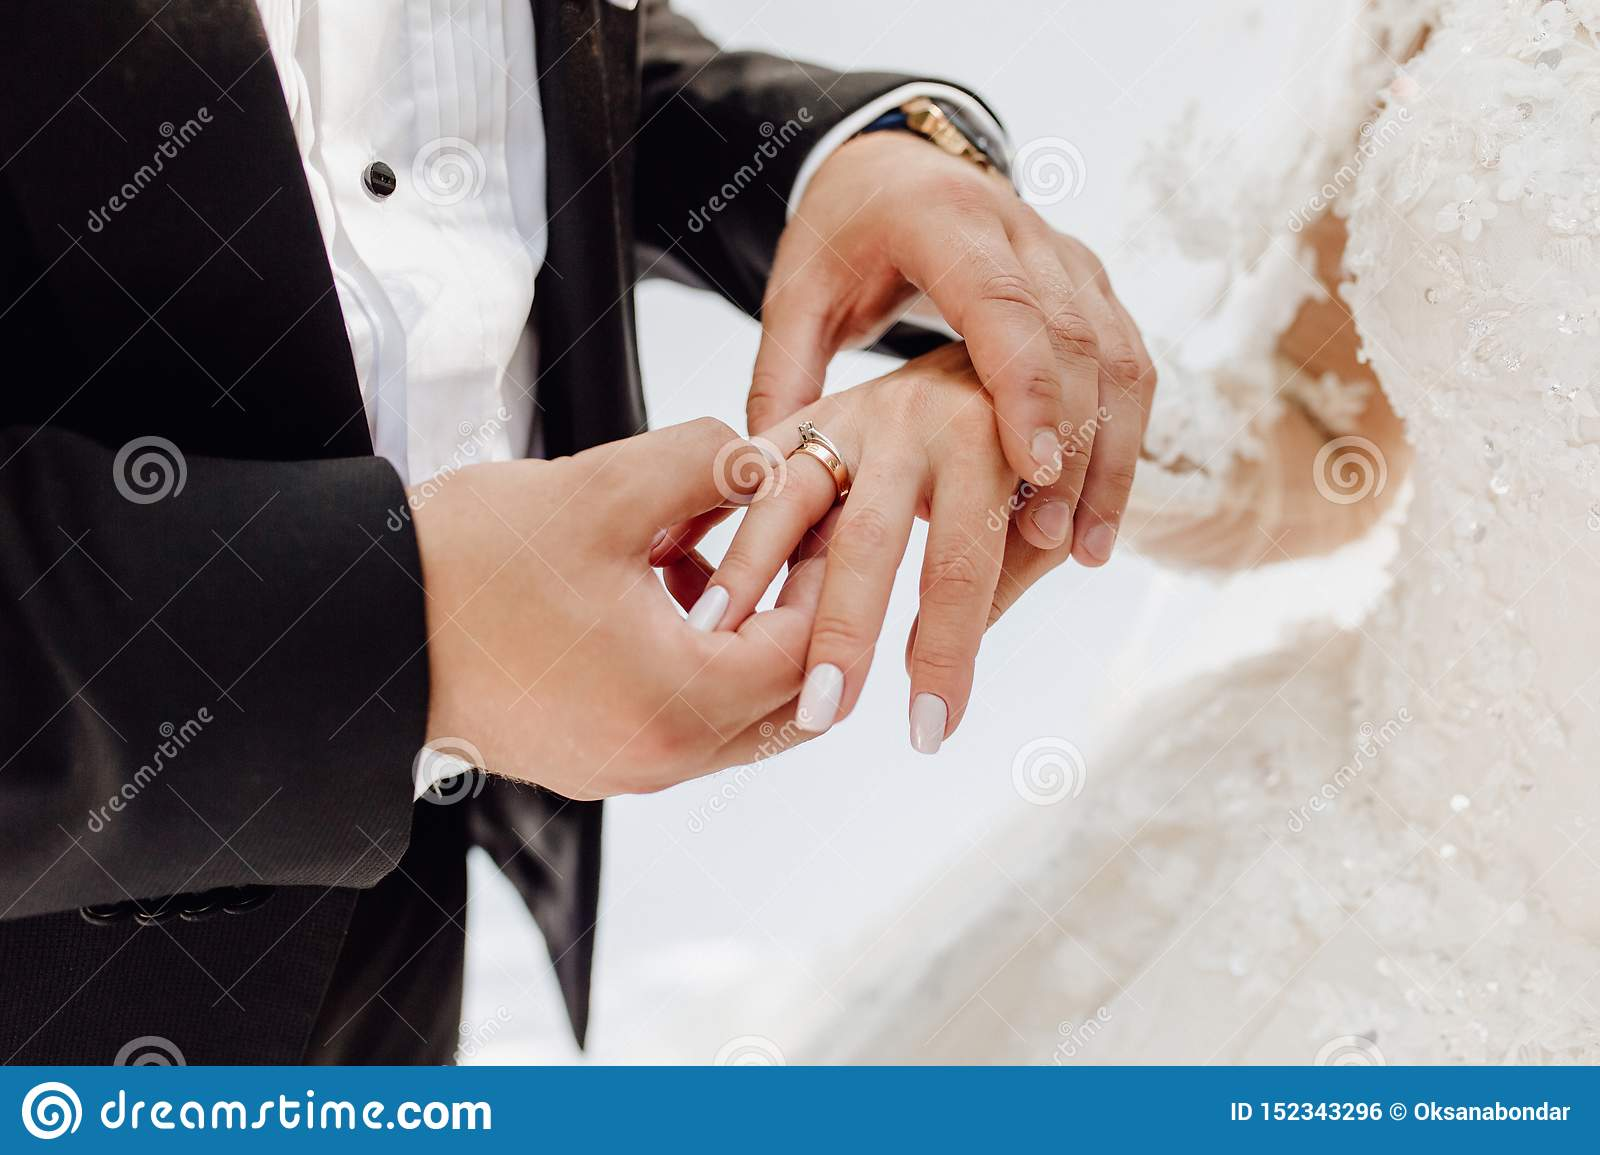 Groom Putting Jewelry Golden Ring On Bride Finger Stock Photo